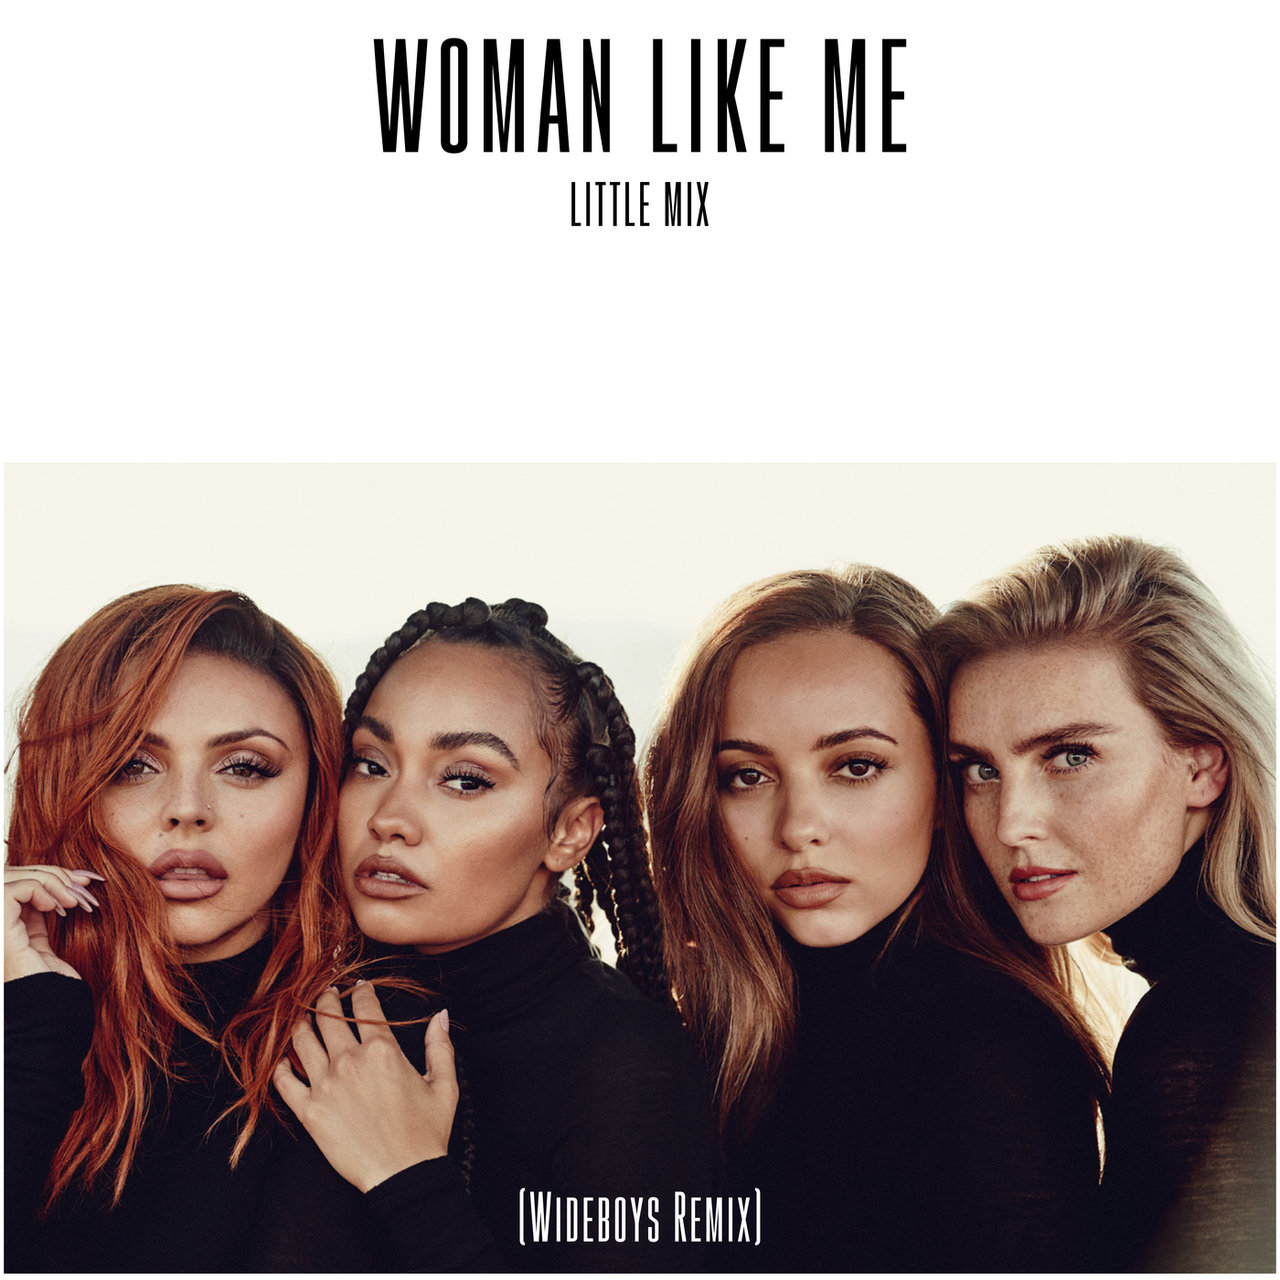 Woman Like Me (Wideboys Remix)